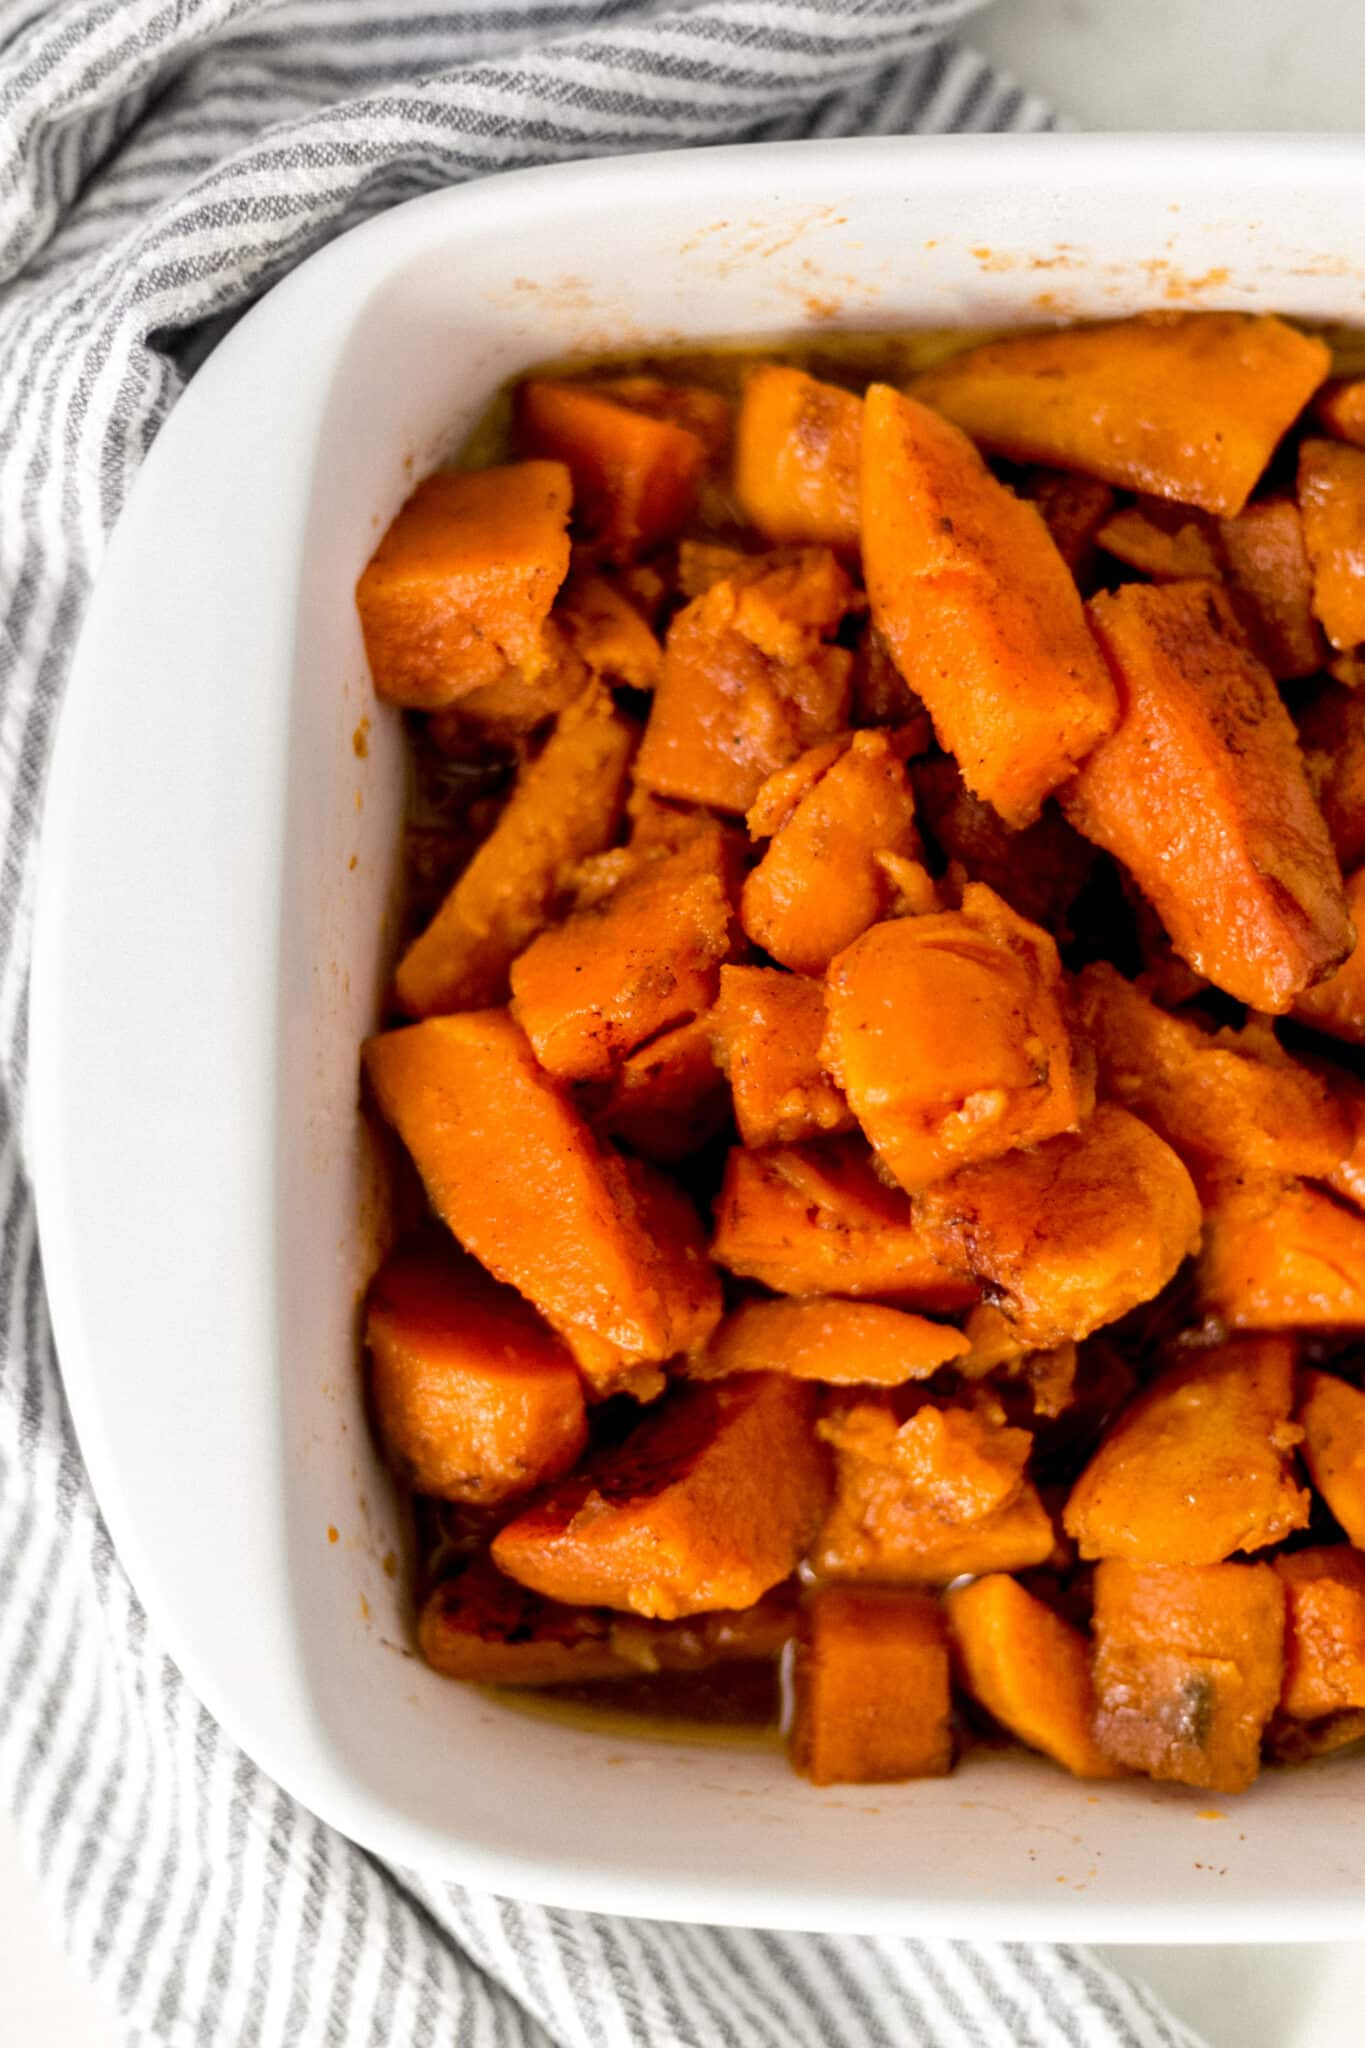 dish with baked candied yams next to a striped napkin